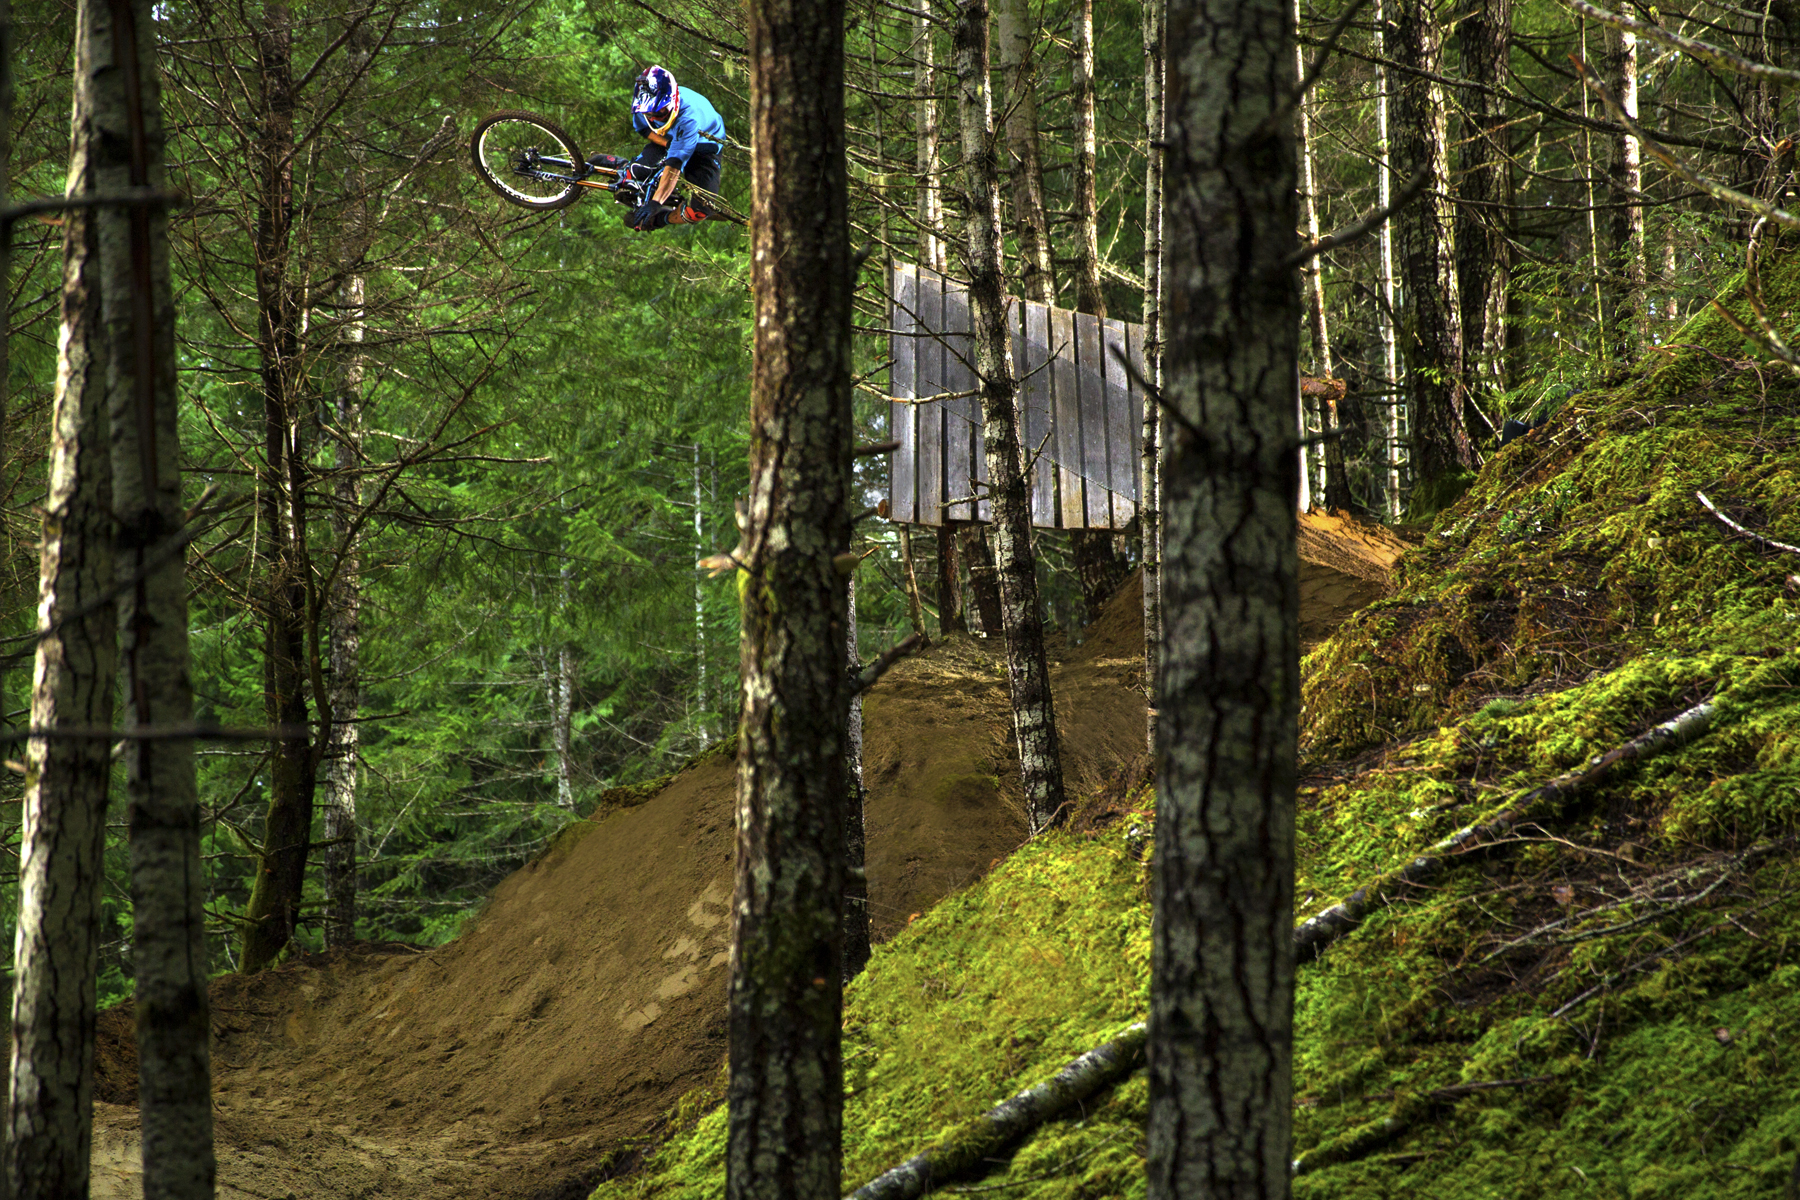 Win A Trip To Ride The Best Mtb Trails In British Columbia